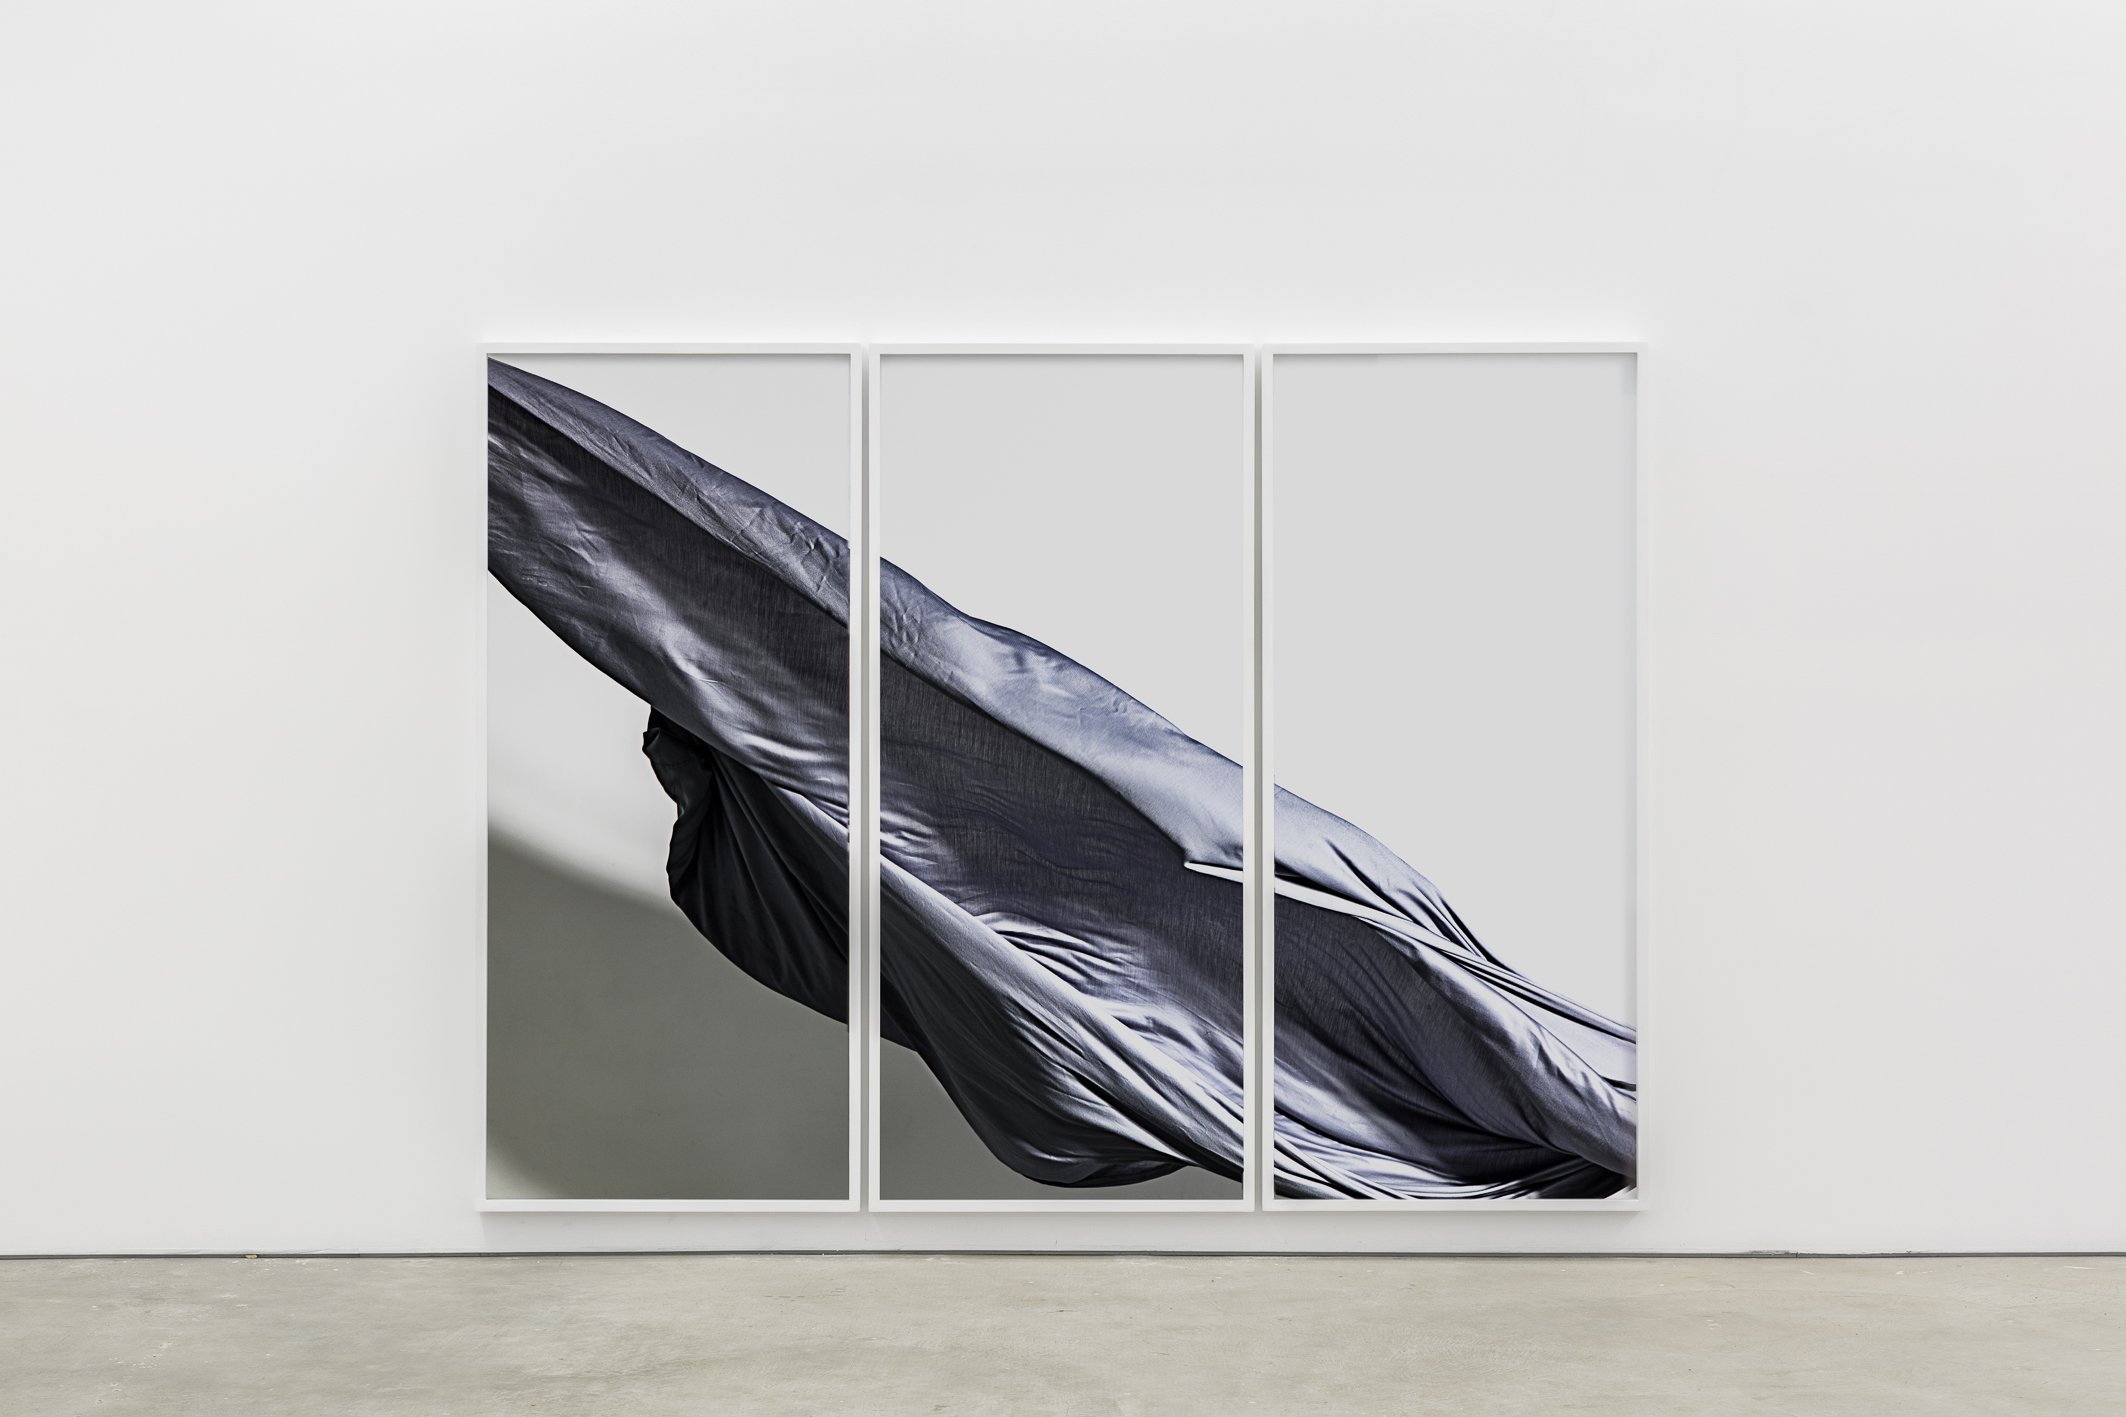 Nik Pantazopoulos,  to unfurl IV (A6007550) / a king size bedsheet / mid grey / the act of making / juddering / dispersing / 2 x Elinchrome flash heads / light value 4.4 / angle of incidence 45o / cable synched to Canon EOS 5D Mark III / EF85mm / f/1.2L II USM Lens / f/8.0 1/80 iso 100 / temperature 5900oK / white acrylic / Tasmanian Oak / perspex / pigment print / 180 cm height x 80 cm x 3, width 6 cm depth 3 cm / 2017